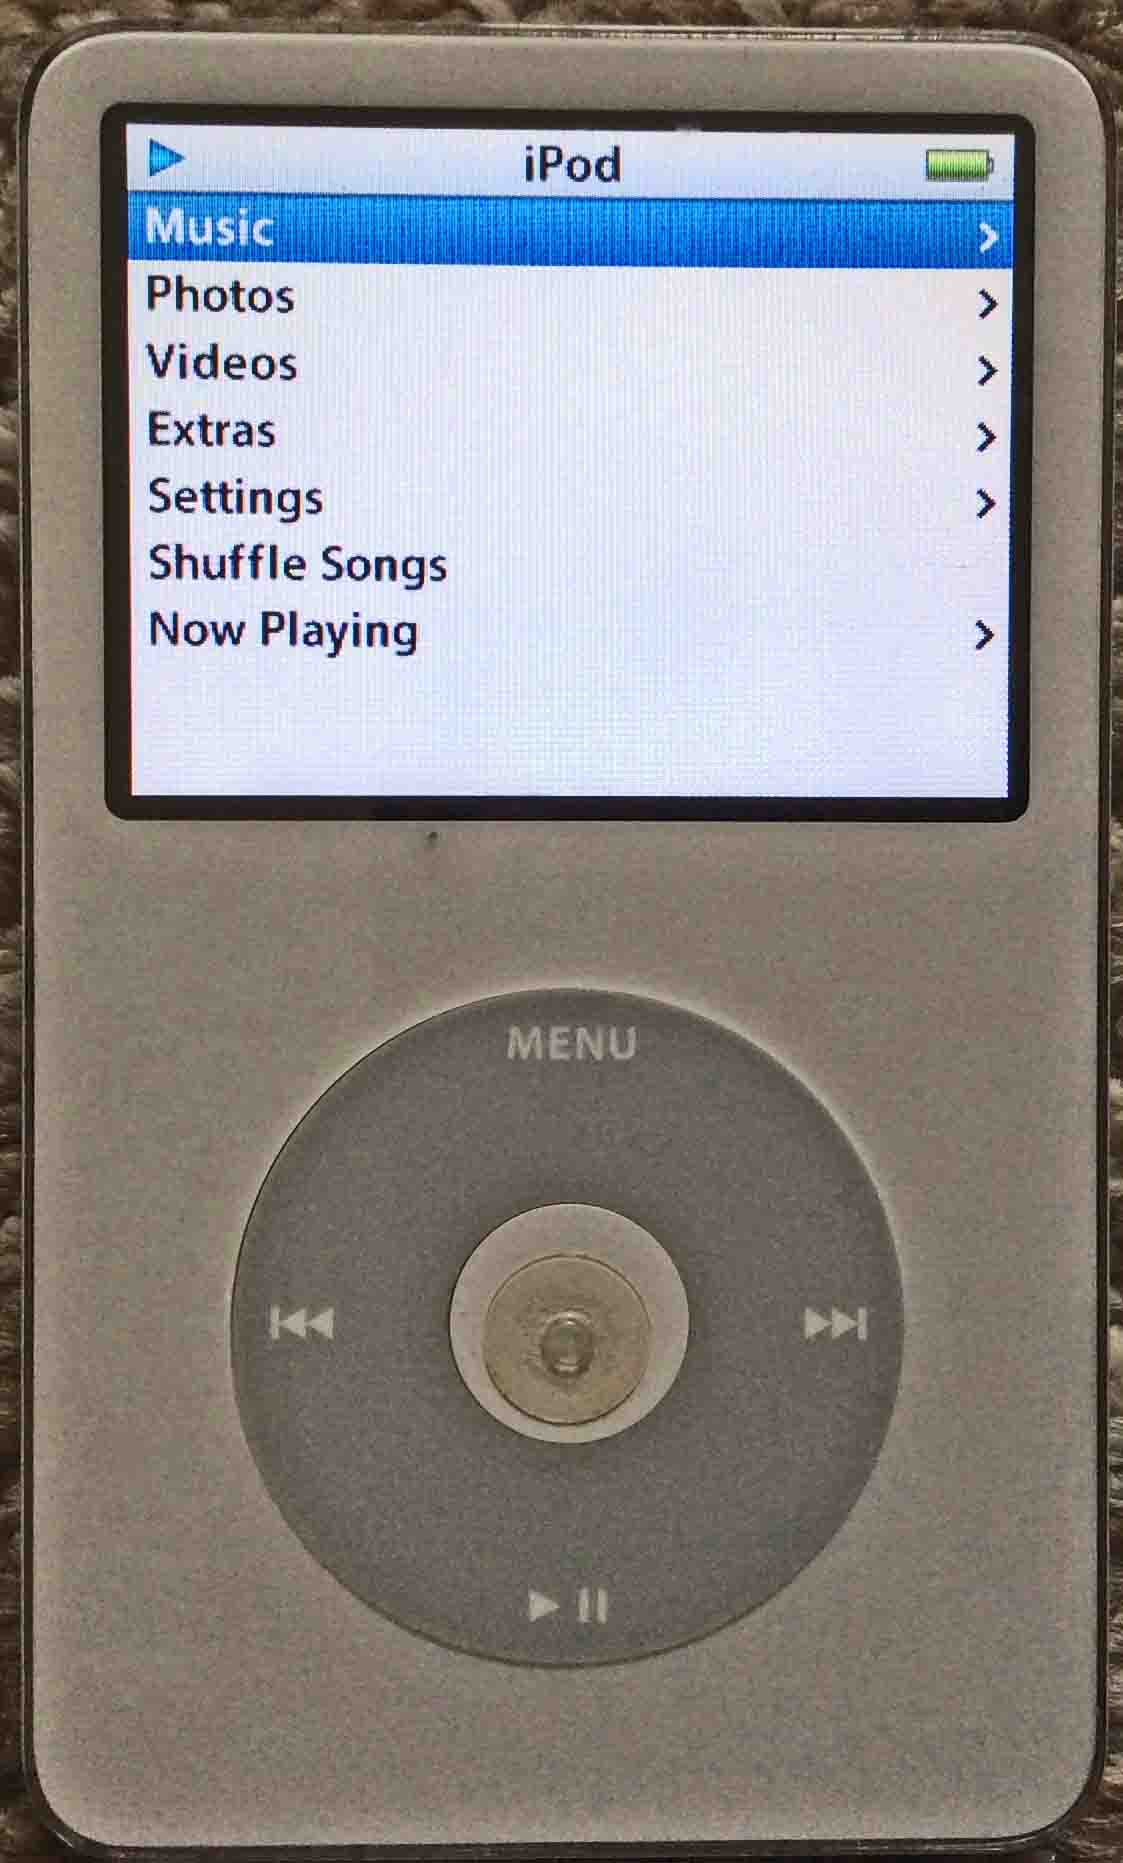 Picture of the iPod Classic Video Player, displaying its Main menu, after  factory default